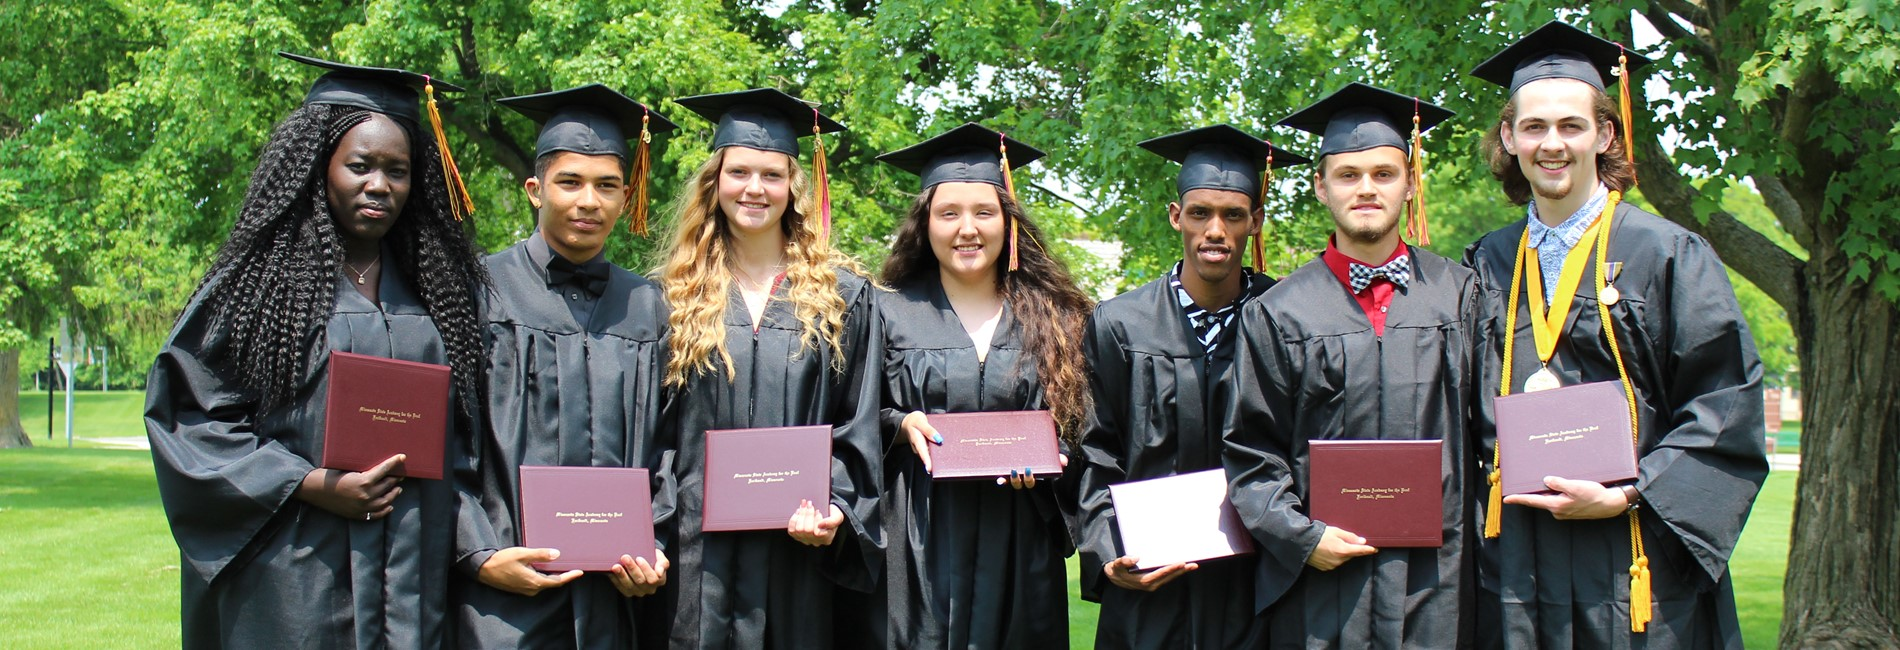 seven high school graduates, wearing graduation caps and gowns, holding their diplomas